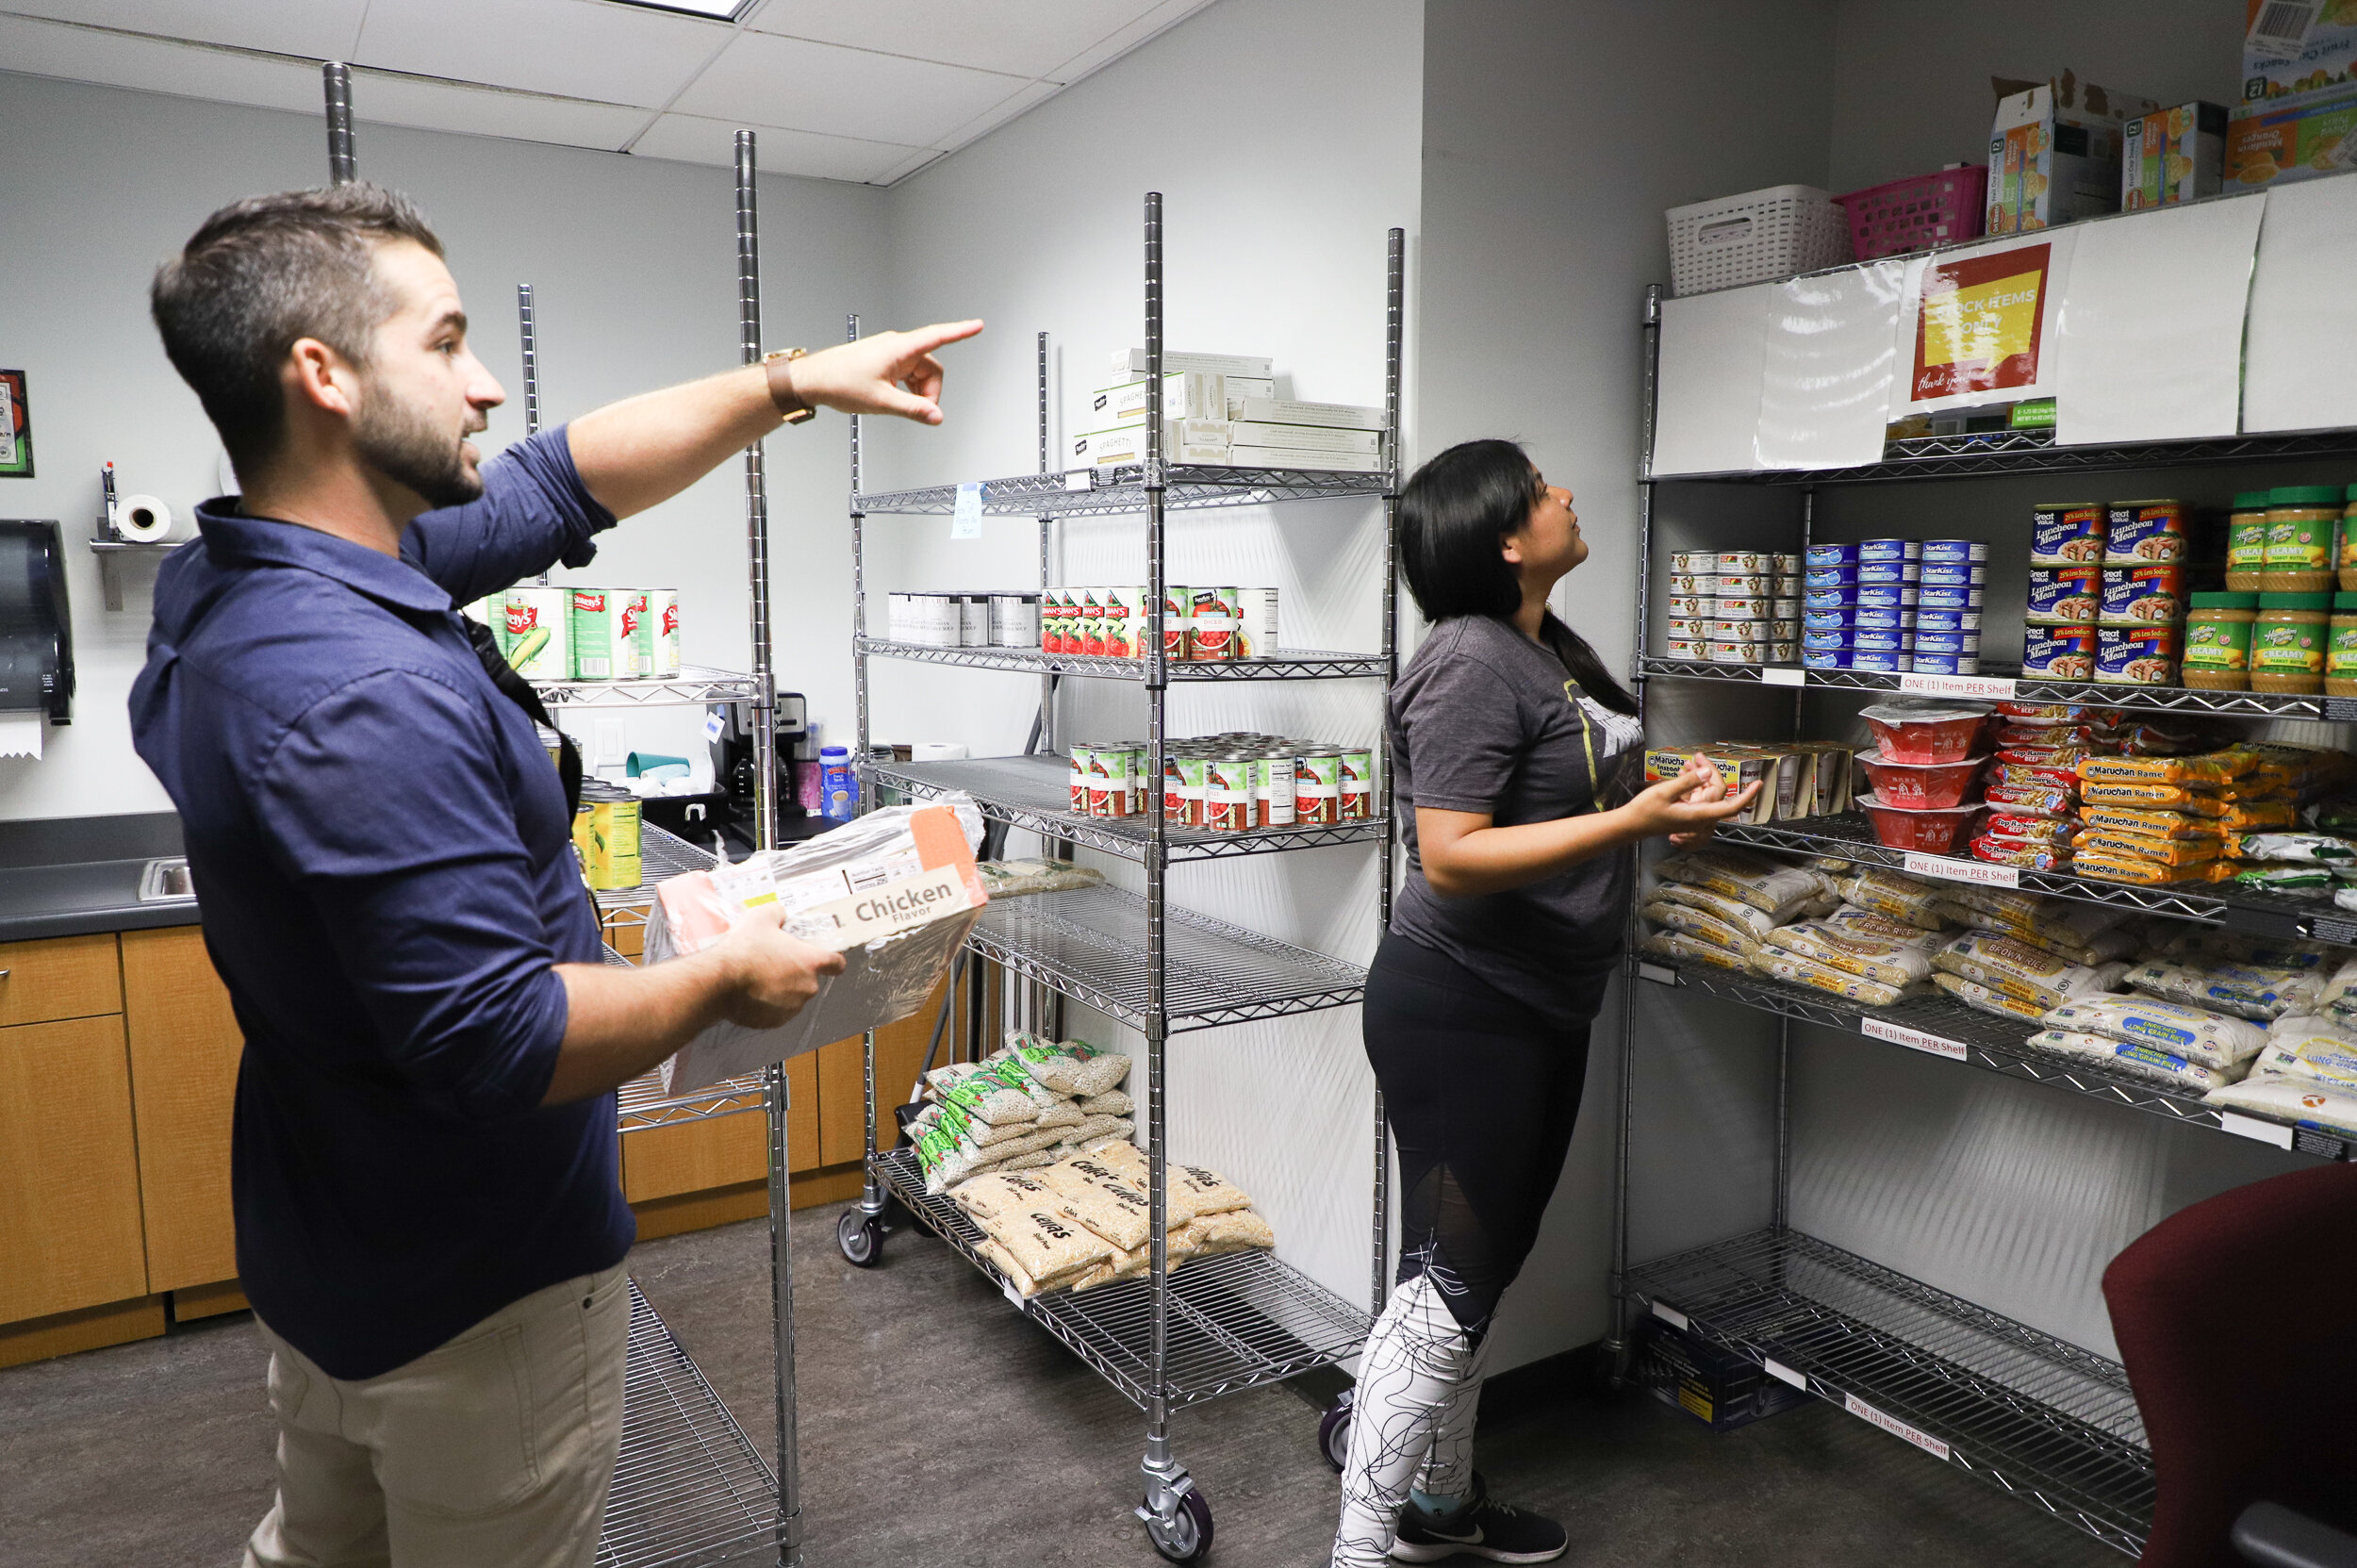 Nicholas Slobin/ Courier James Bull, manager of the Lancer Pantry, and English major Sarahy Medina, 23, from Los Angeles, organize food items in the Lancer Pantry at PCC on Friday, September 13, 2019.